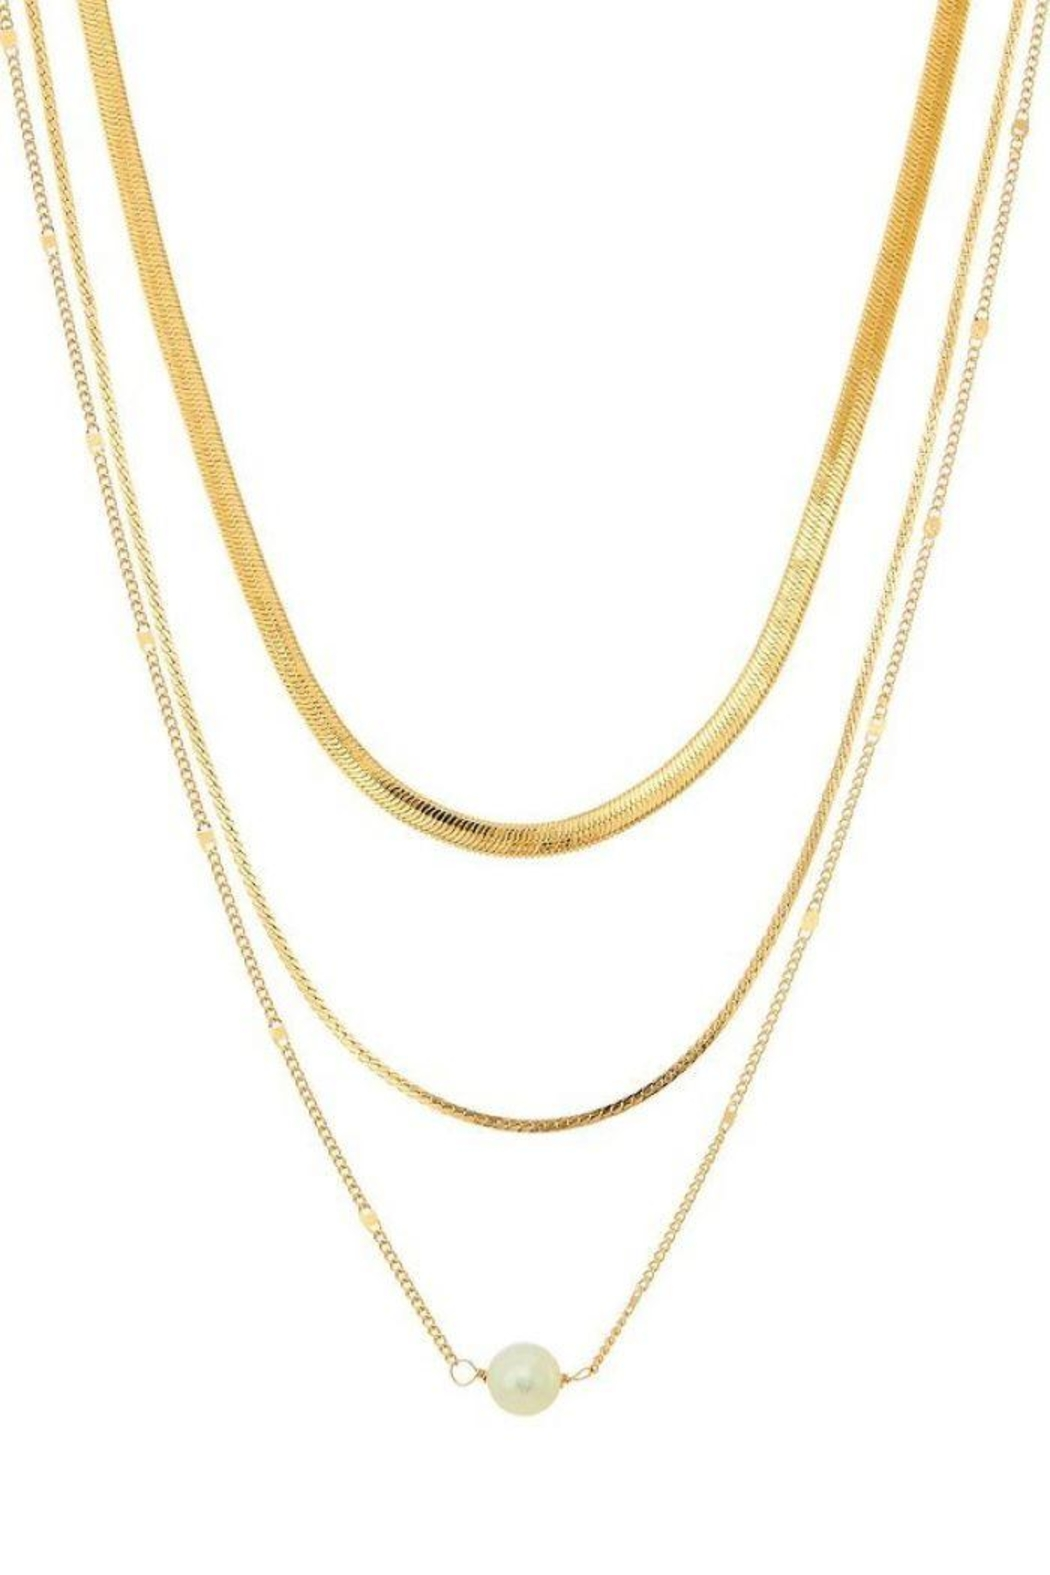 Ana Accessories Layered Chain Necklace - Main Image